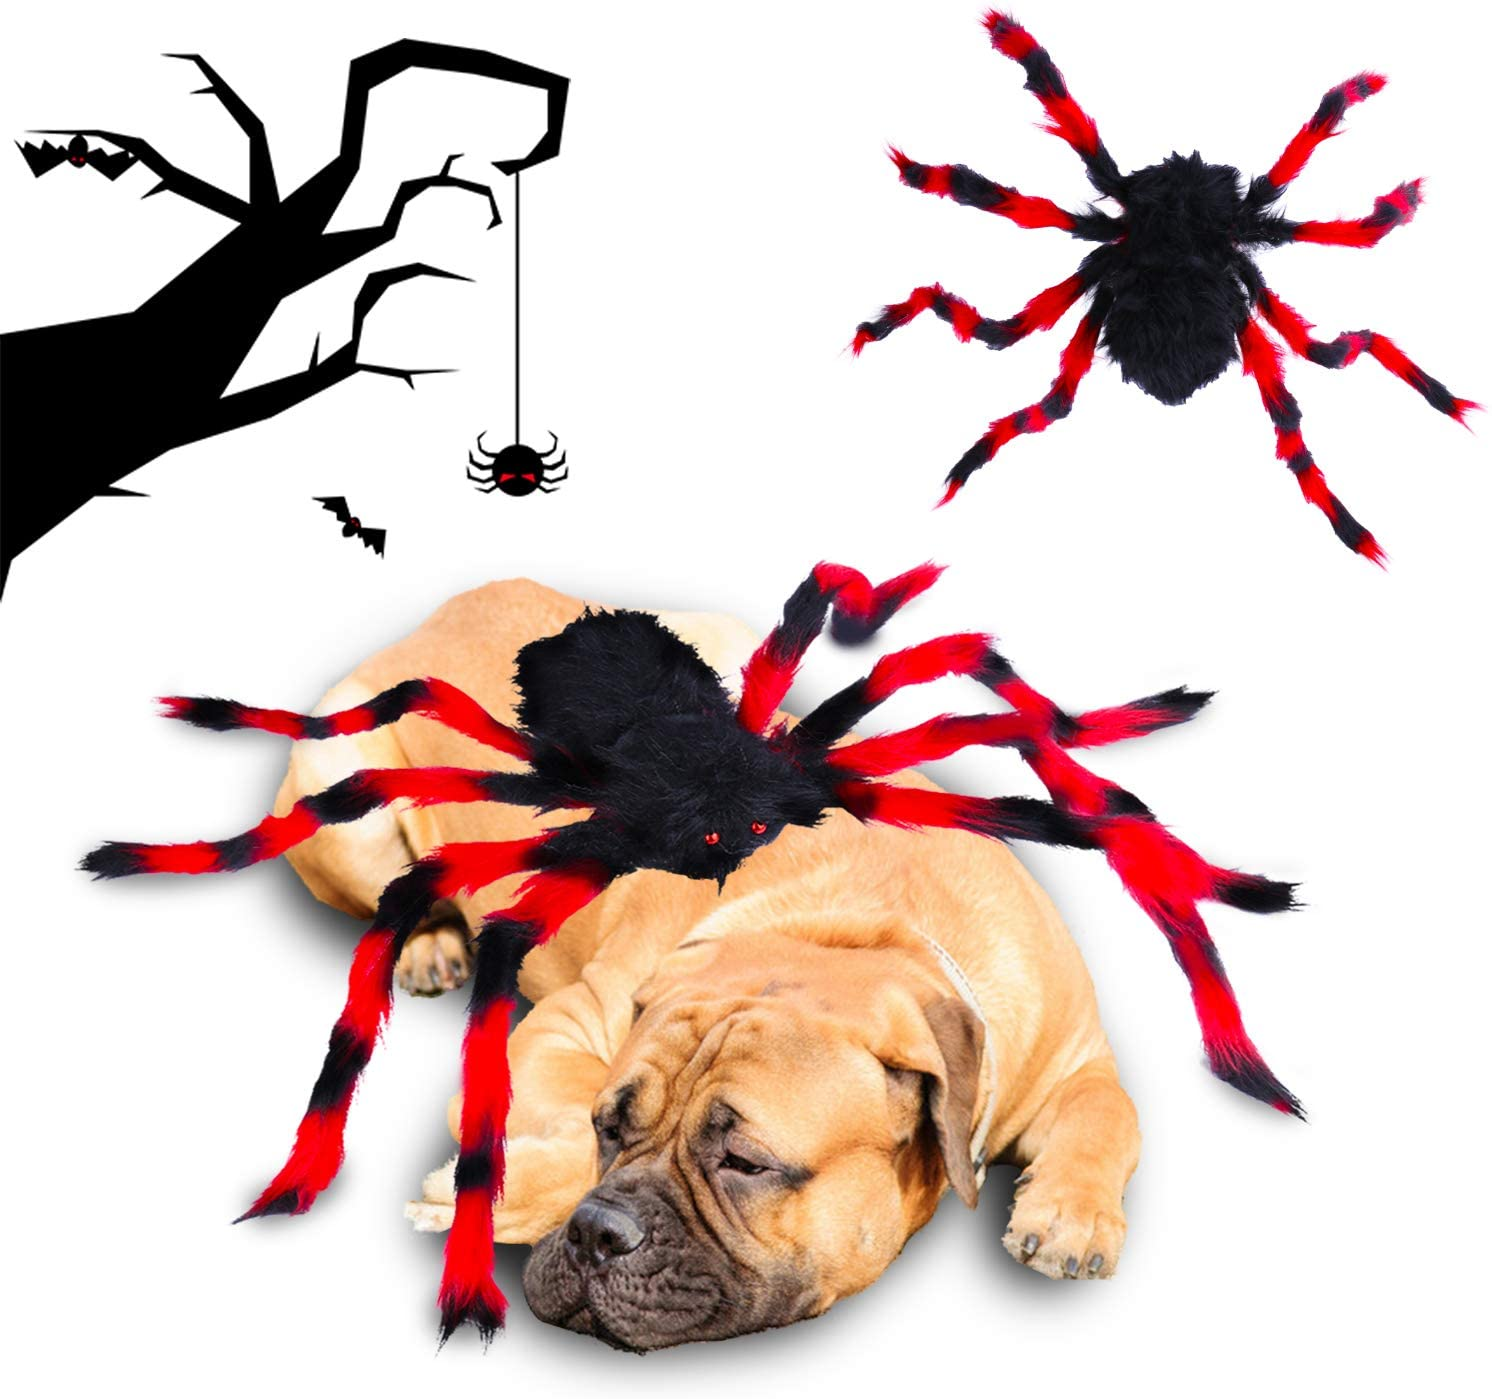 senyouth Halloween Dog Spider Costume - Fun Party Dress Up Accessories Furry Small to Medium Dogs Simulation Spider Pet Costume Cosplay Dress Up Holiday Decoration Costume Halloween Pet Accessories S